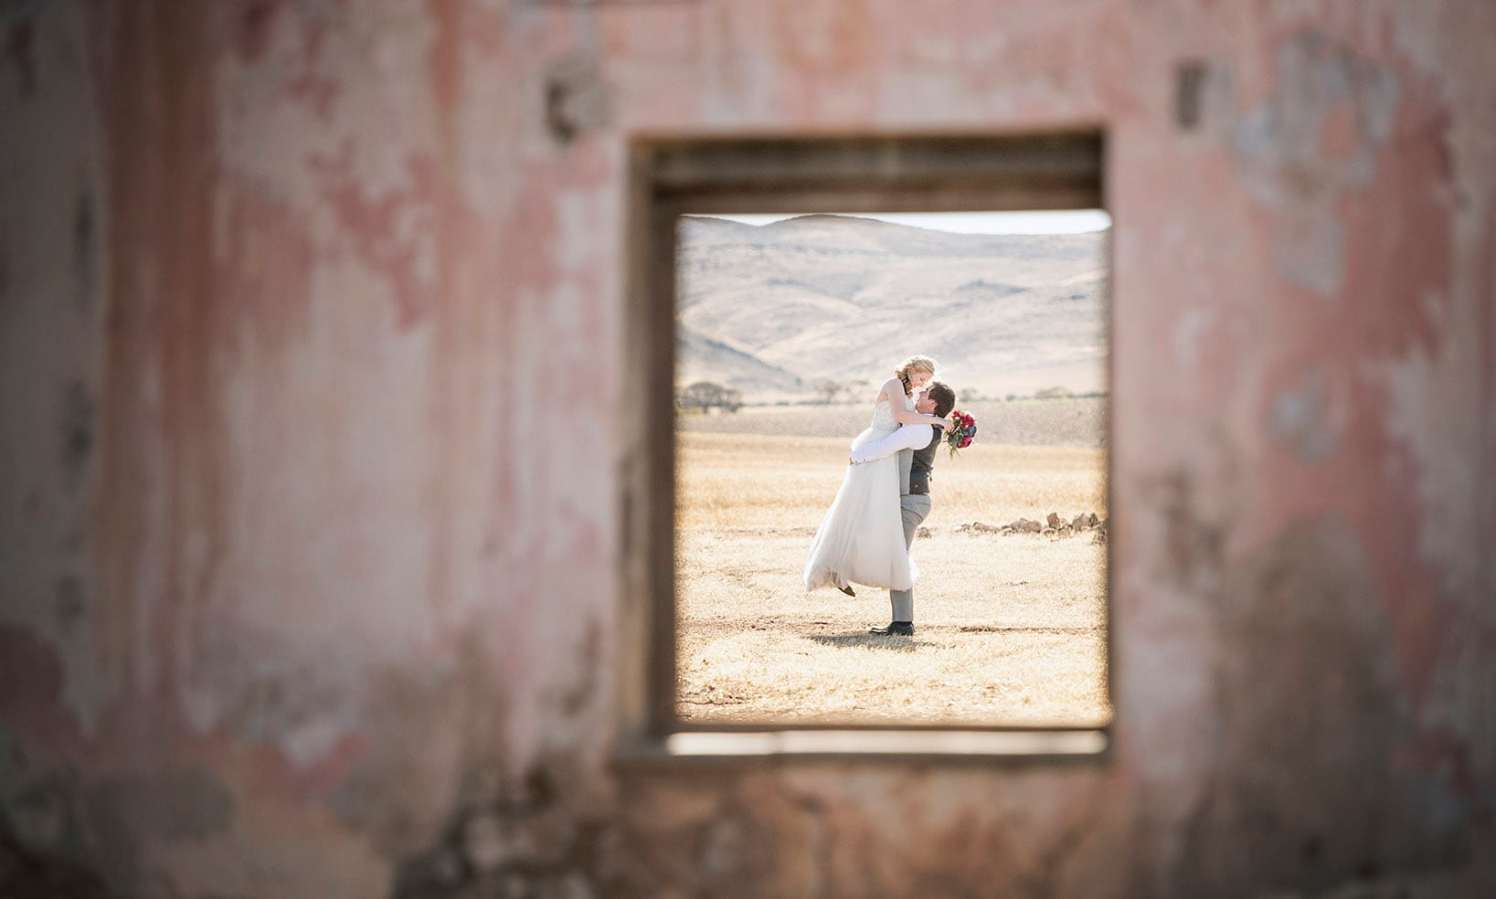 Groom picking up bride through window